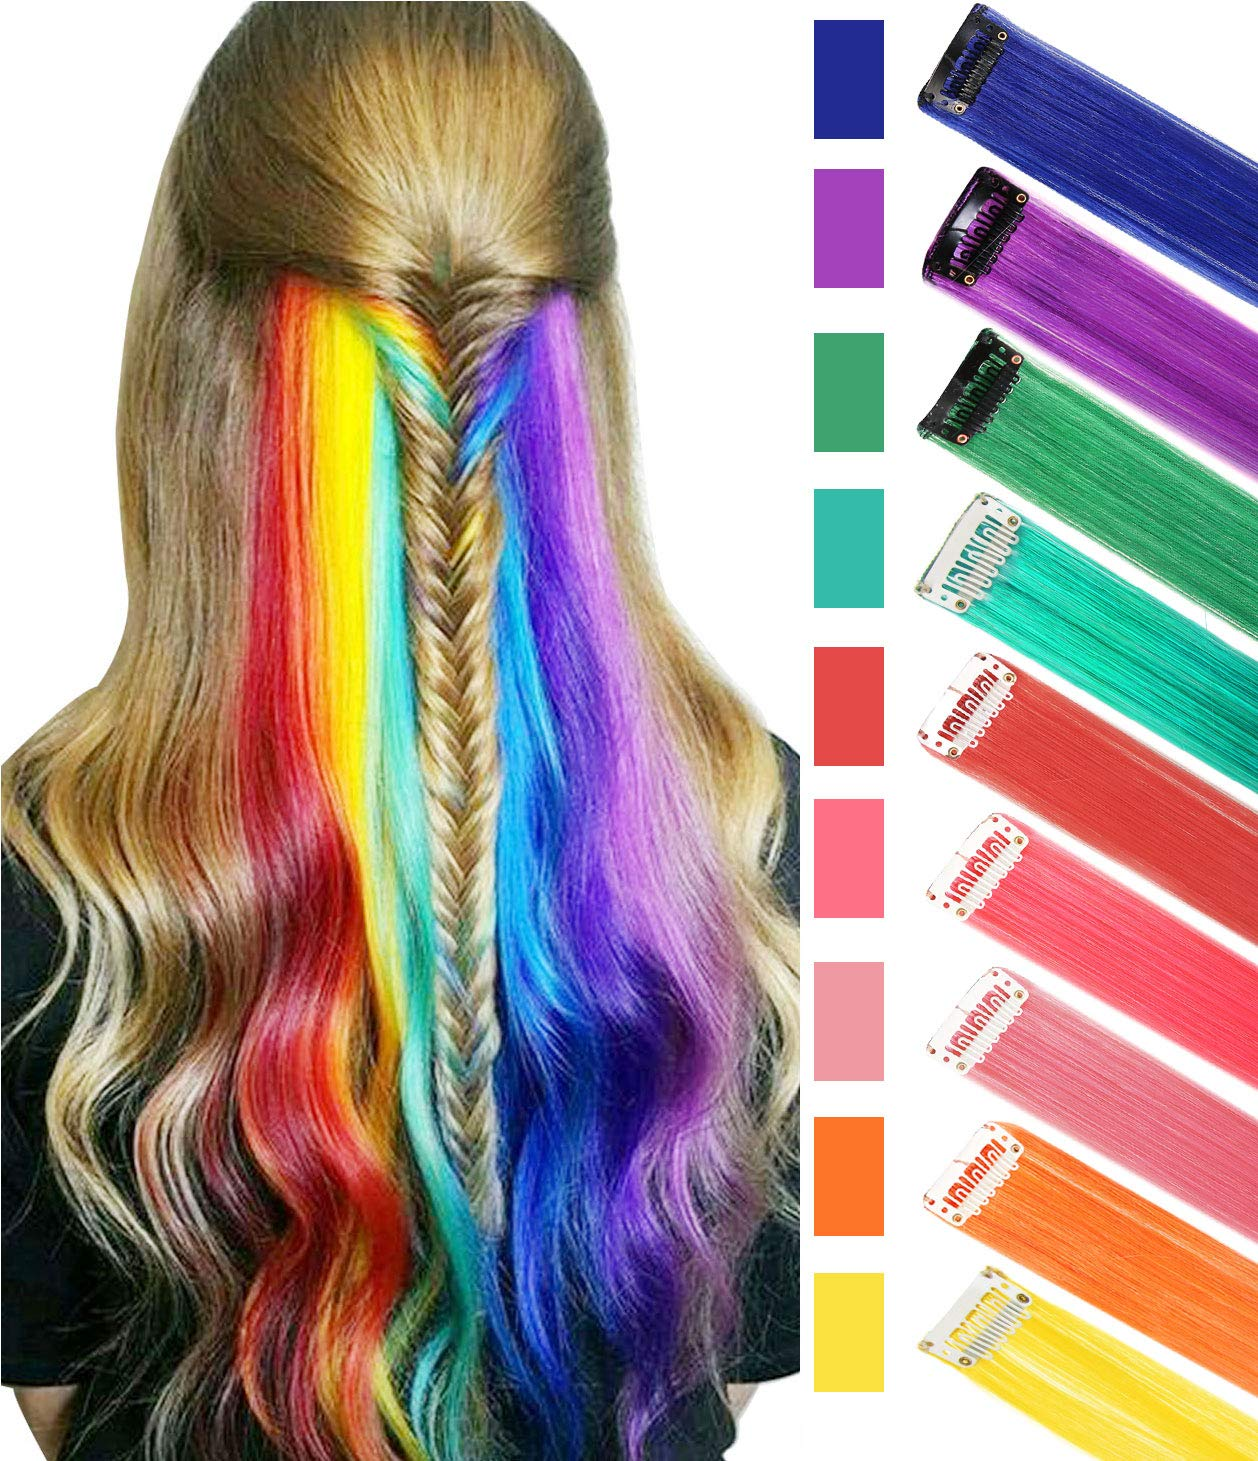 BINIHA Rainbow Hair Extensions Colored Party Highlights Straight Hair Extension Clip In/On For Amercian girls and Dolls Kids Costume Wig Pieces 9PCS by BINIHA